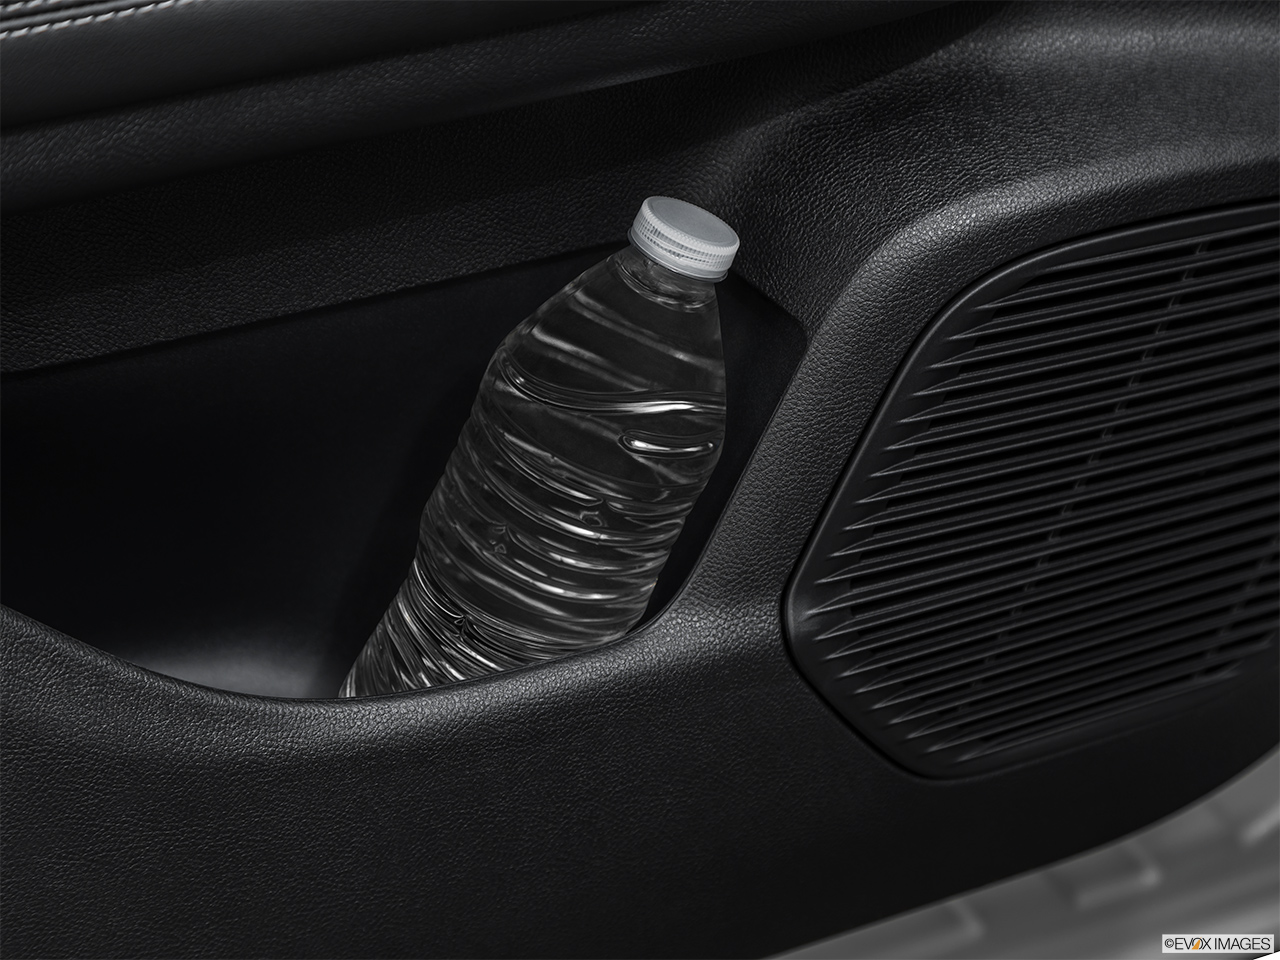 2020 Lincoln Corsair Standard Cup holder prop (tertiary).